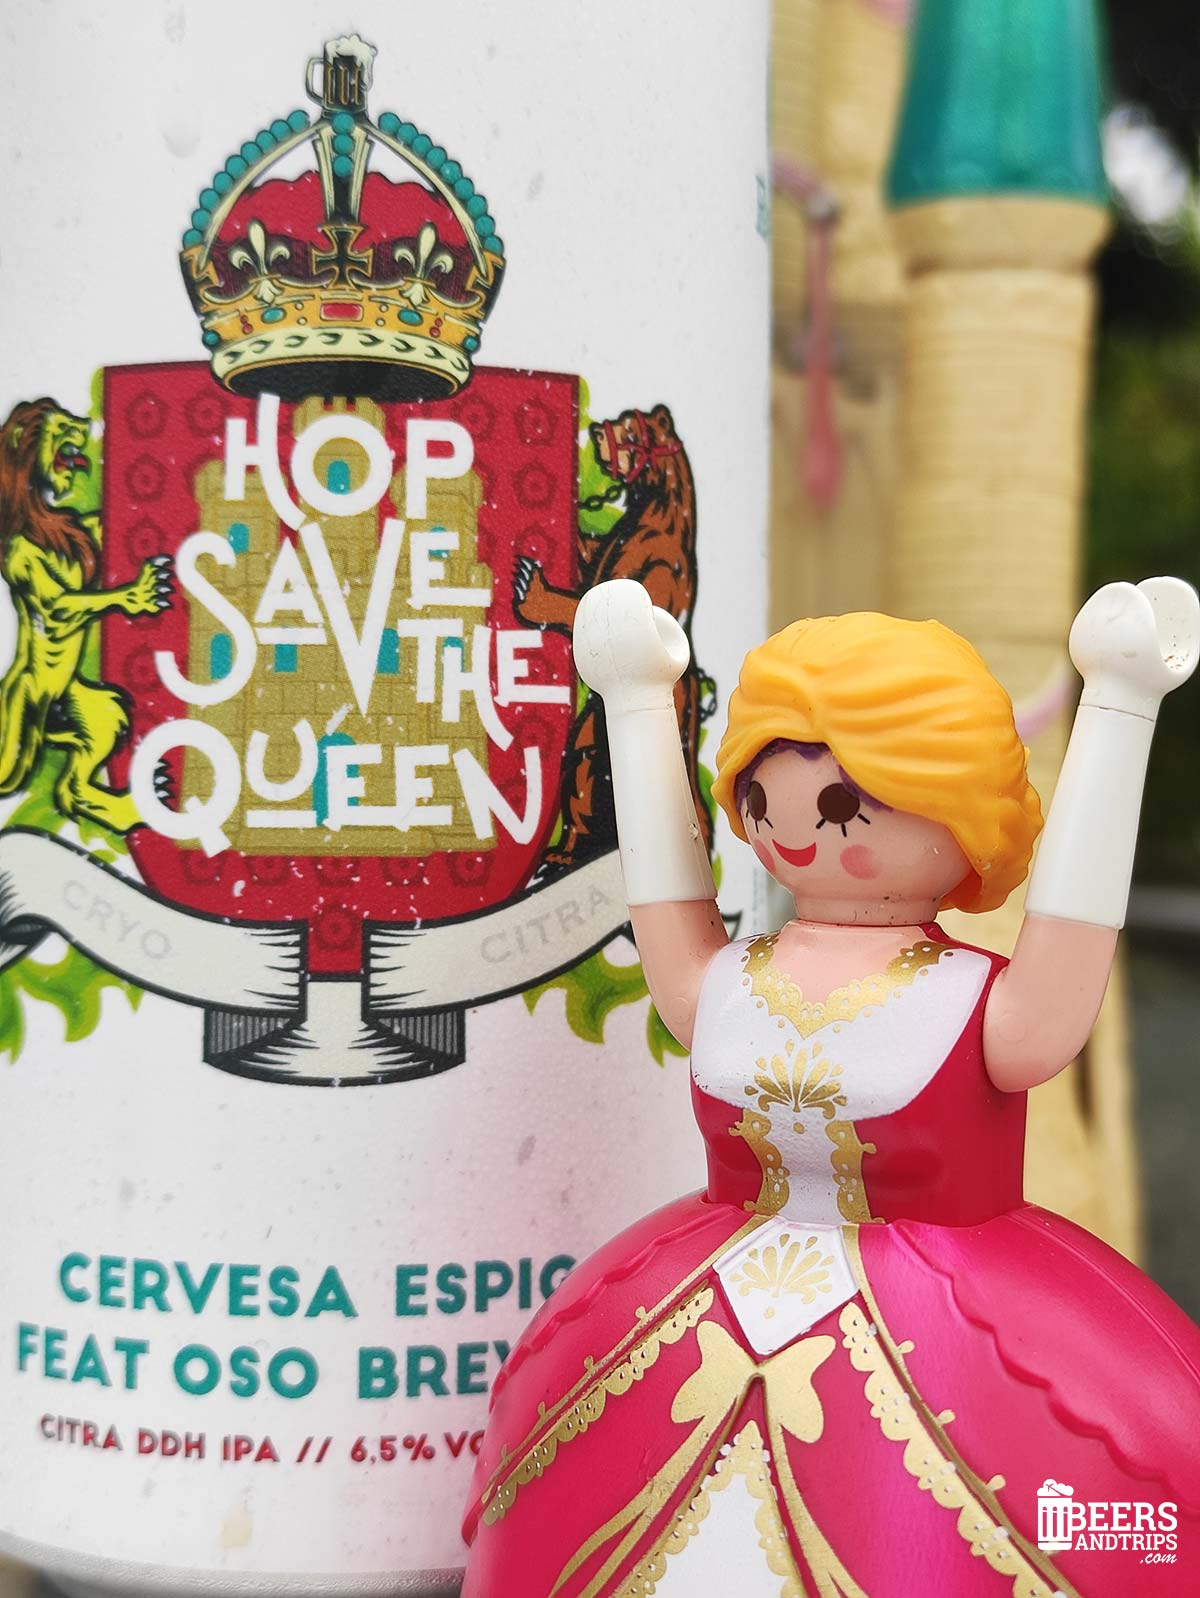 Hop Save The Queen